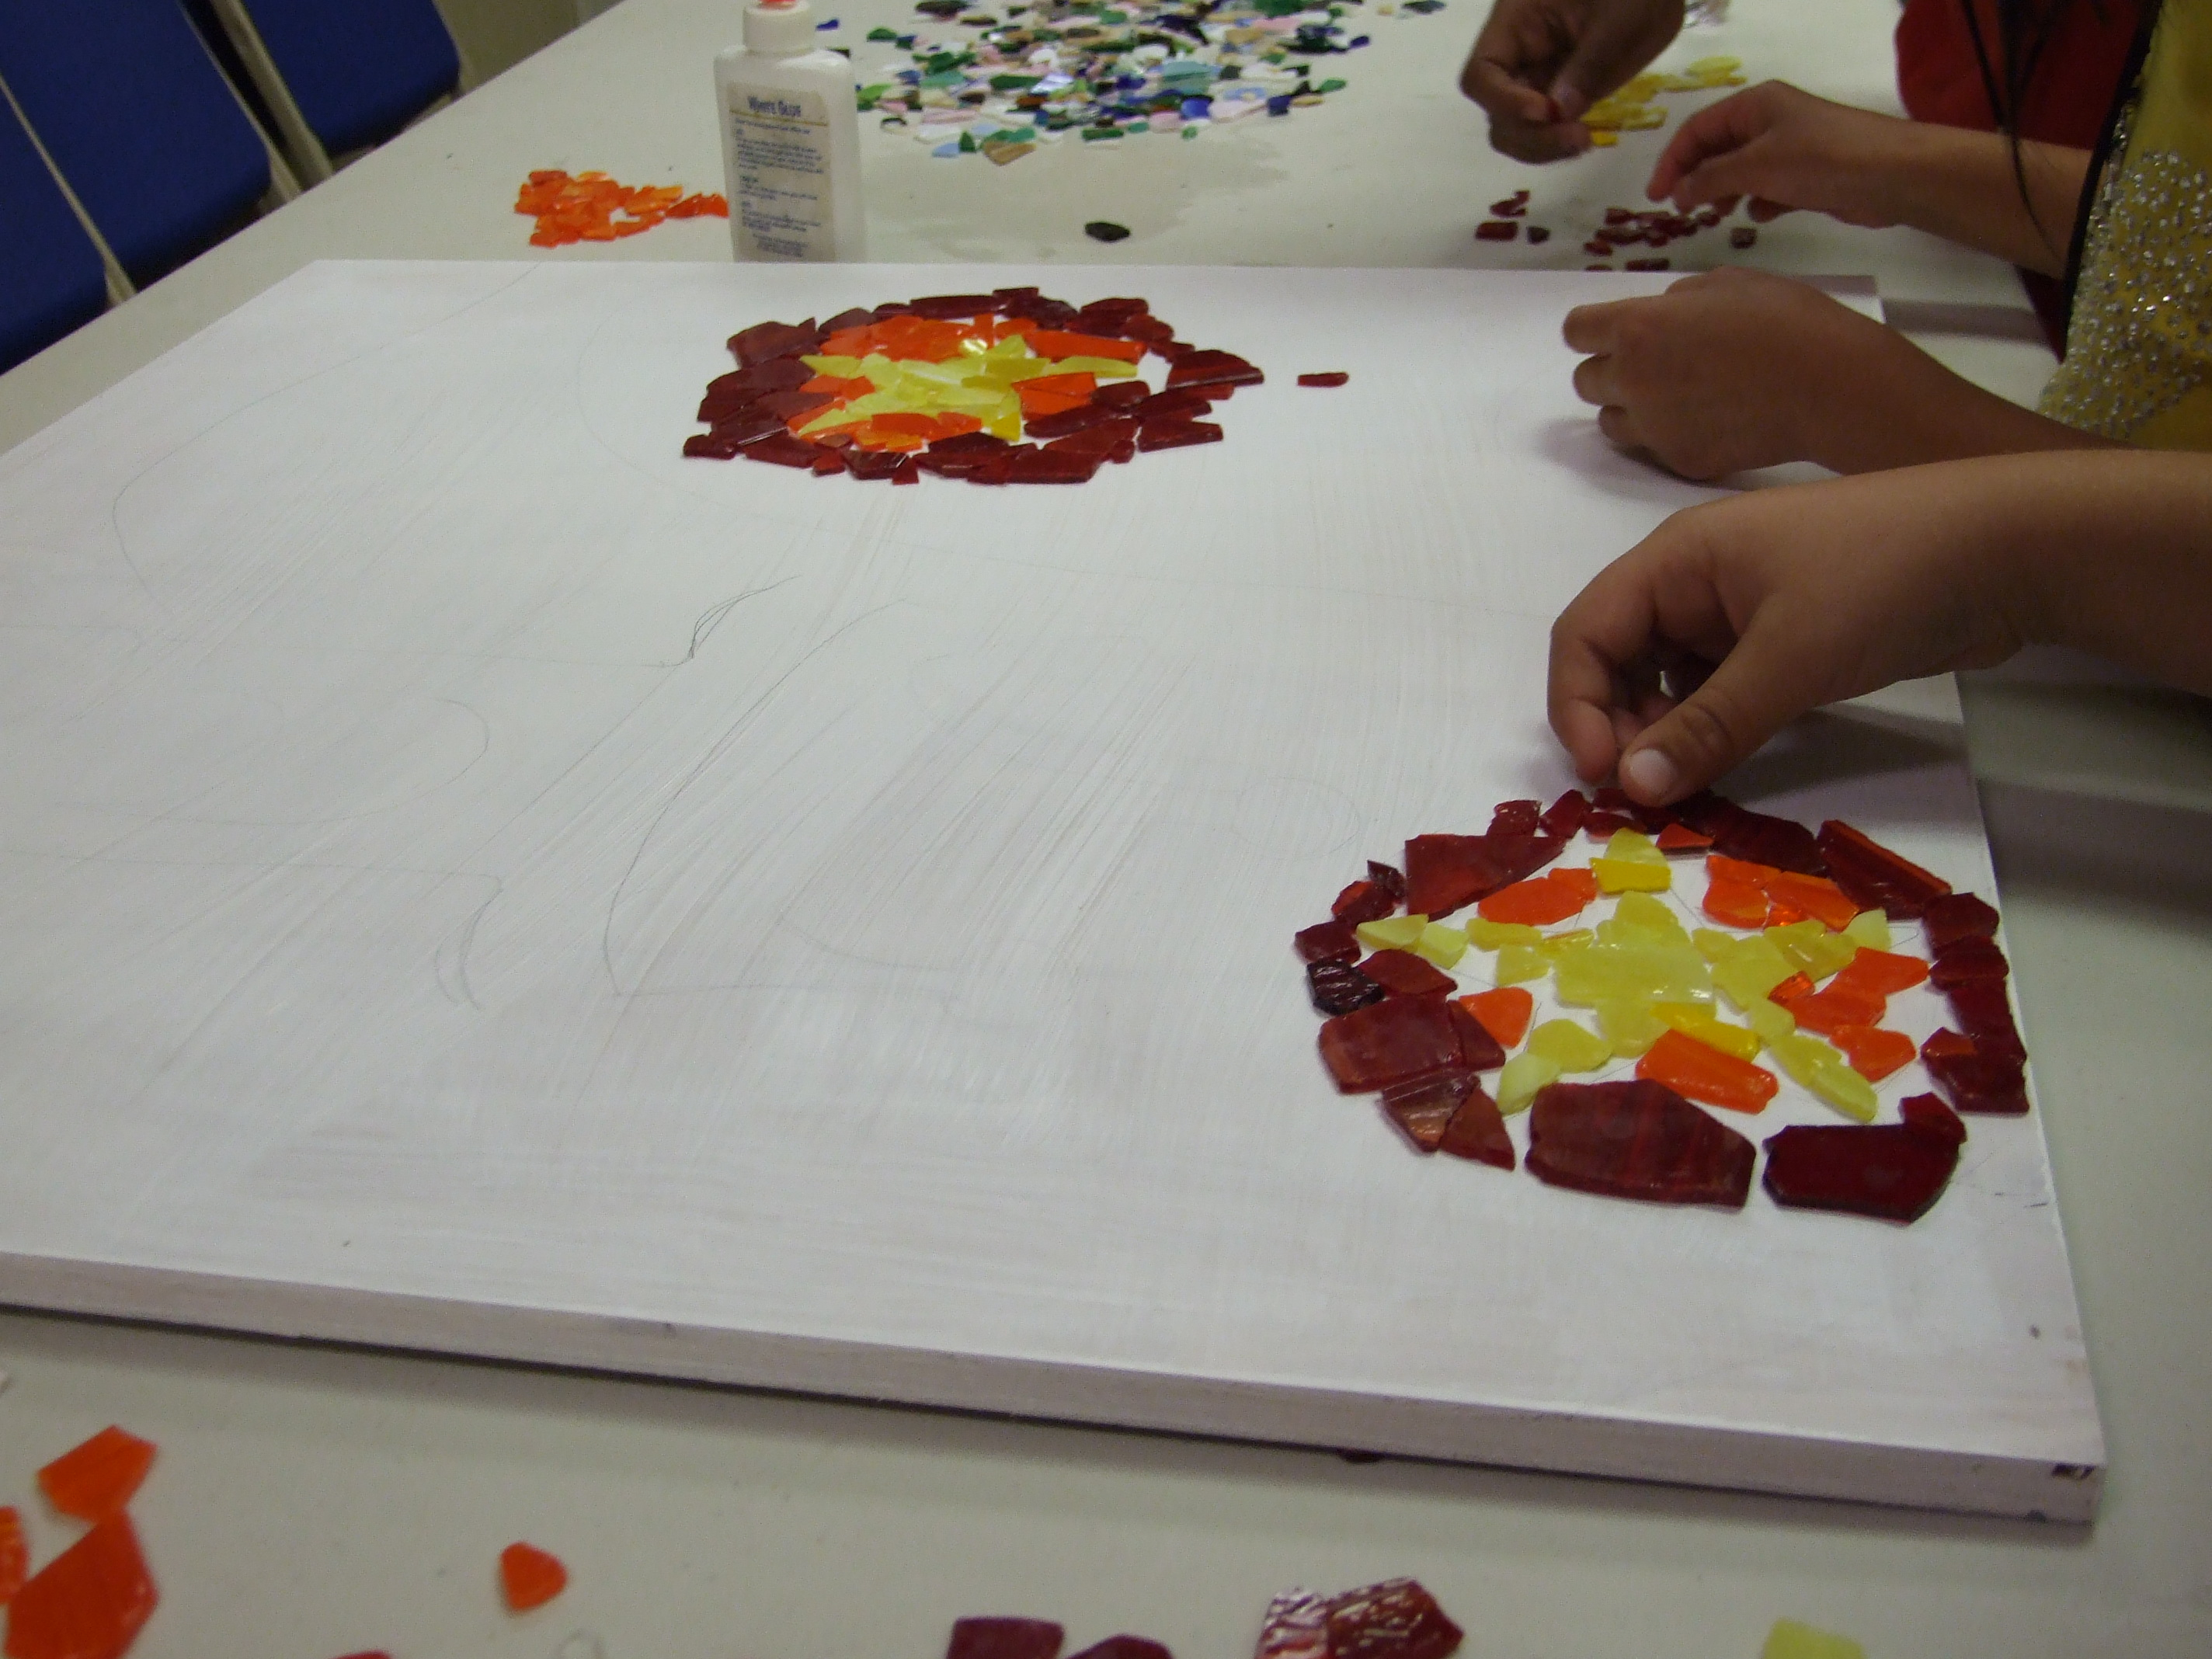 Glass Mosaic at VBS in progress